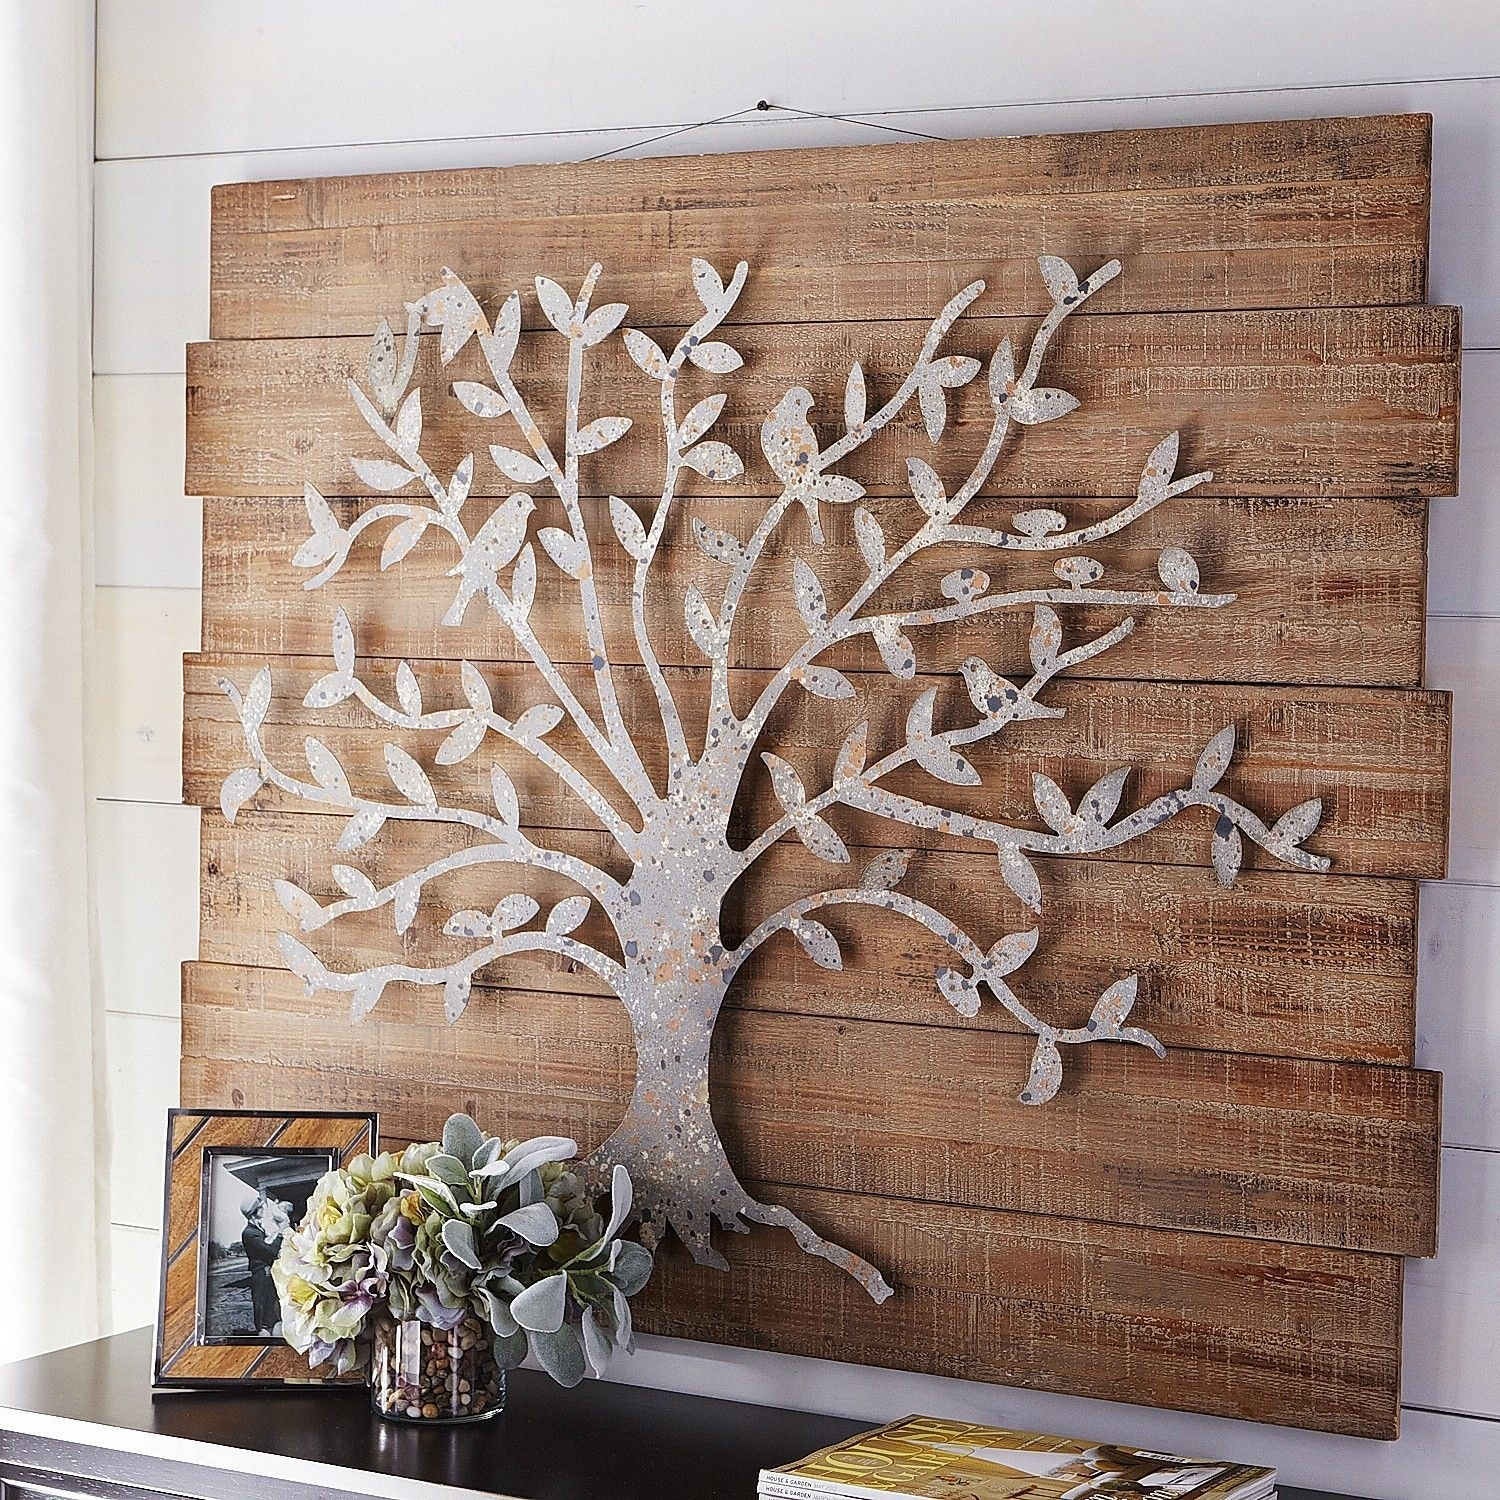 Timeless Tree Wall Decor | Pier 1 Imports … | Metal Work In 2018… with Metal Wall Art Trees (Image 17 of 20)